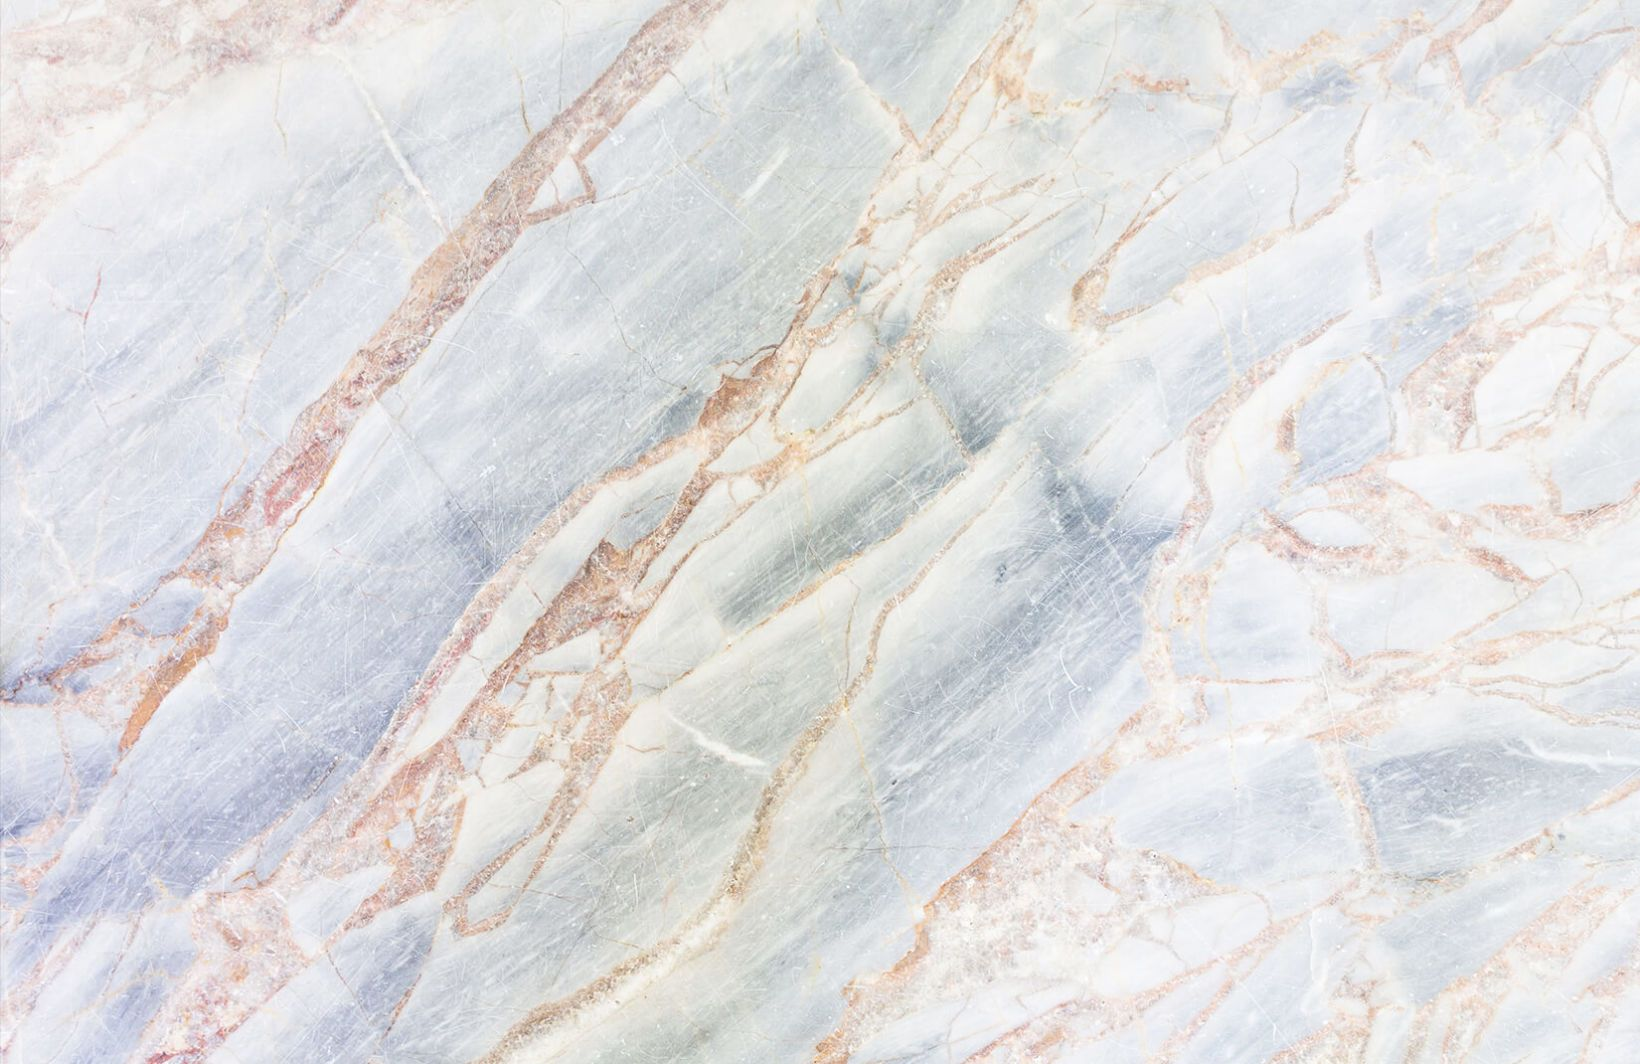 Wonderful Wallpaper Marble Plain - bd7d23db7124917defe7beef0f1efea6  Perfect Image Reference_38584.jpg